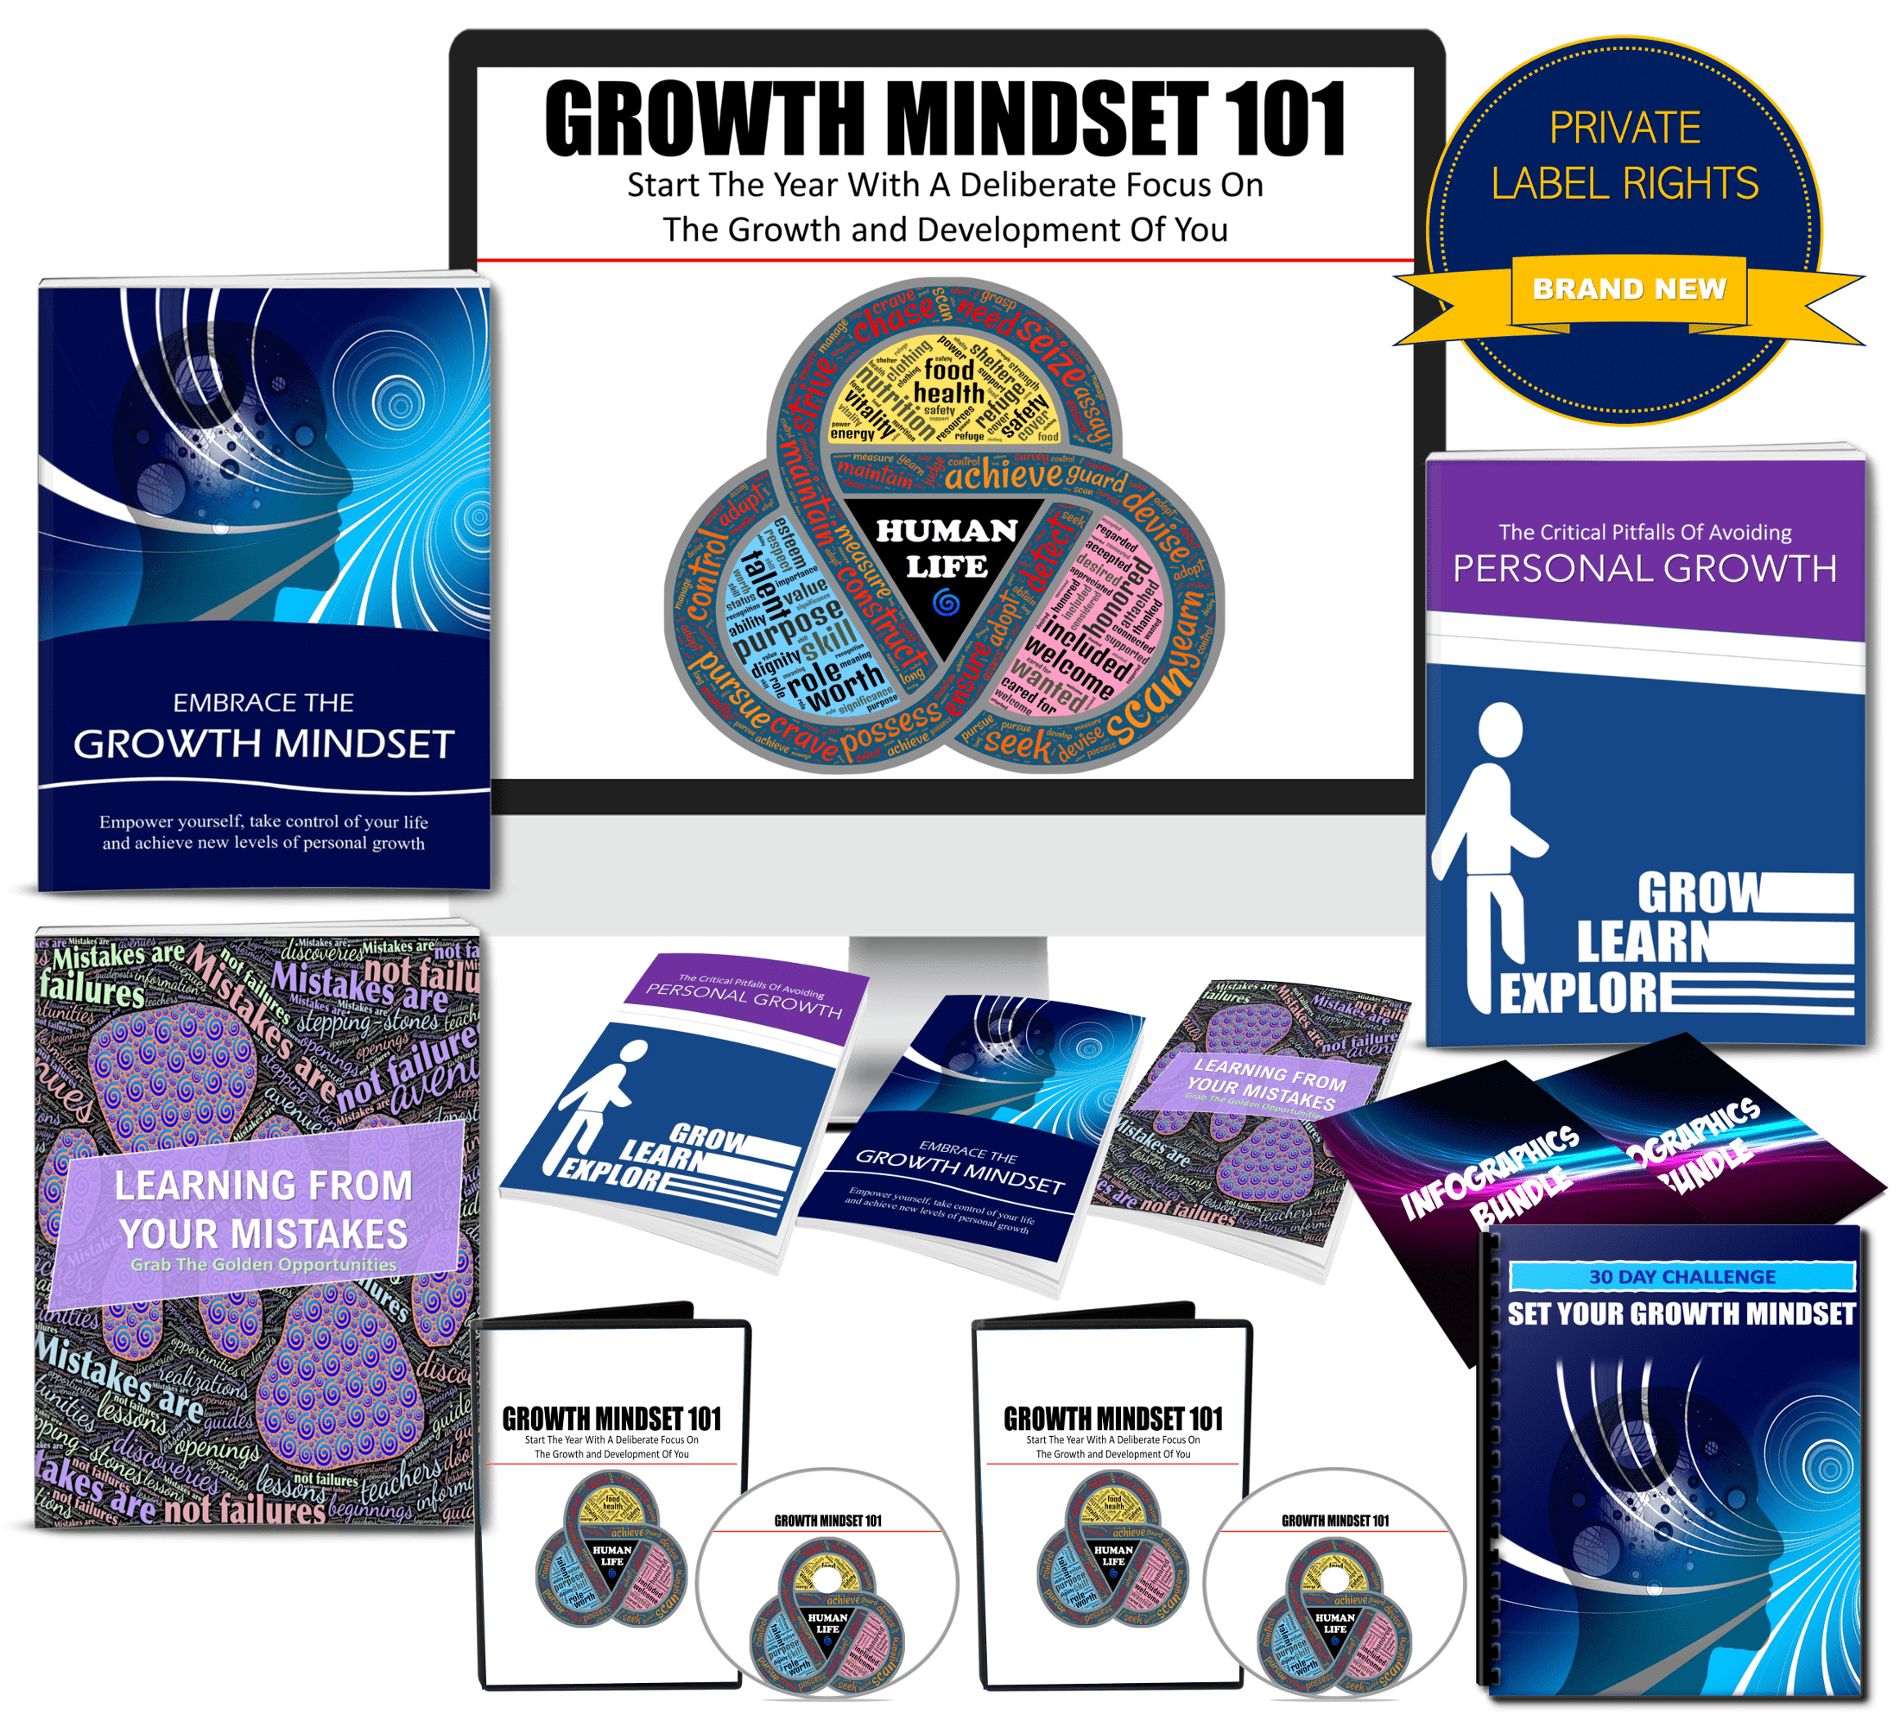 Growth Mindset Giant Content pack with PLR Rights